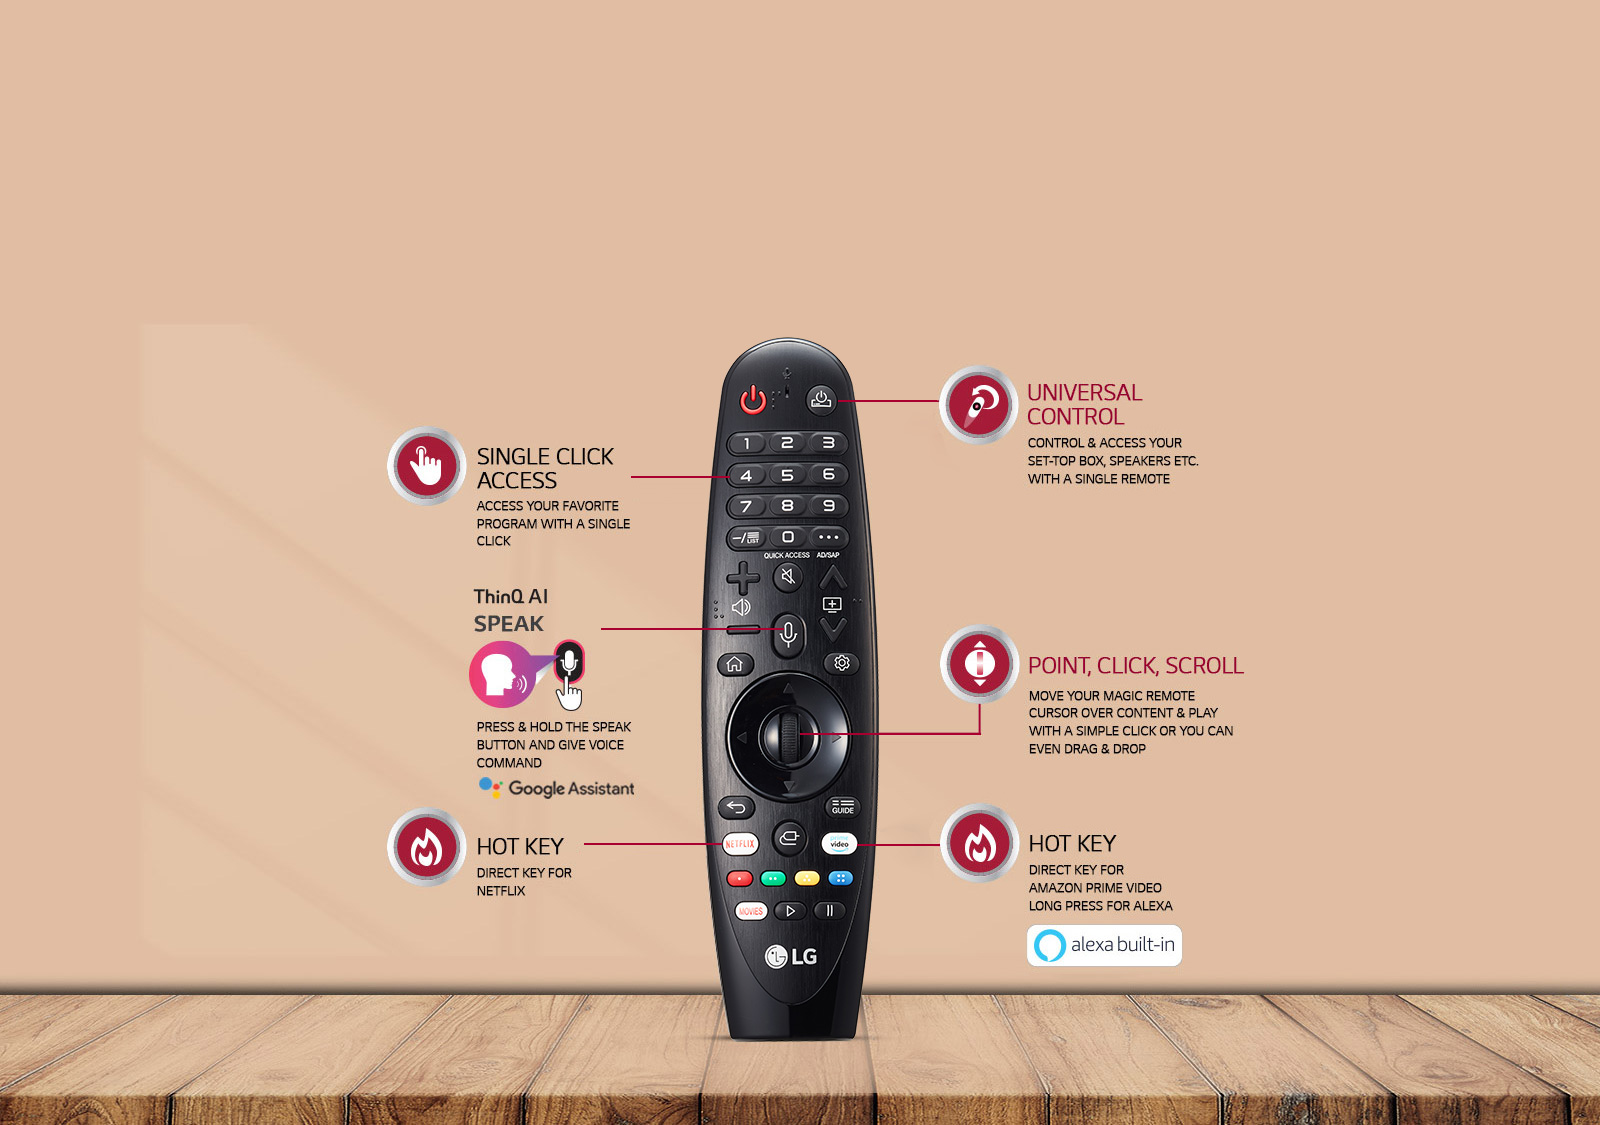 LG Ultra HD TV Magic Remote